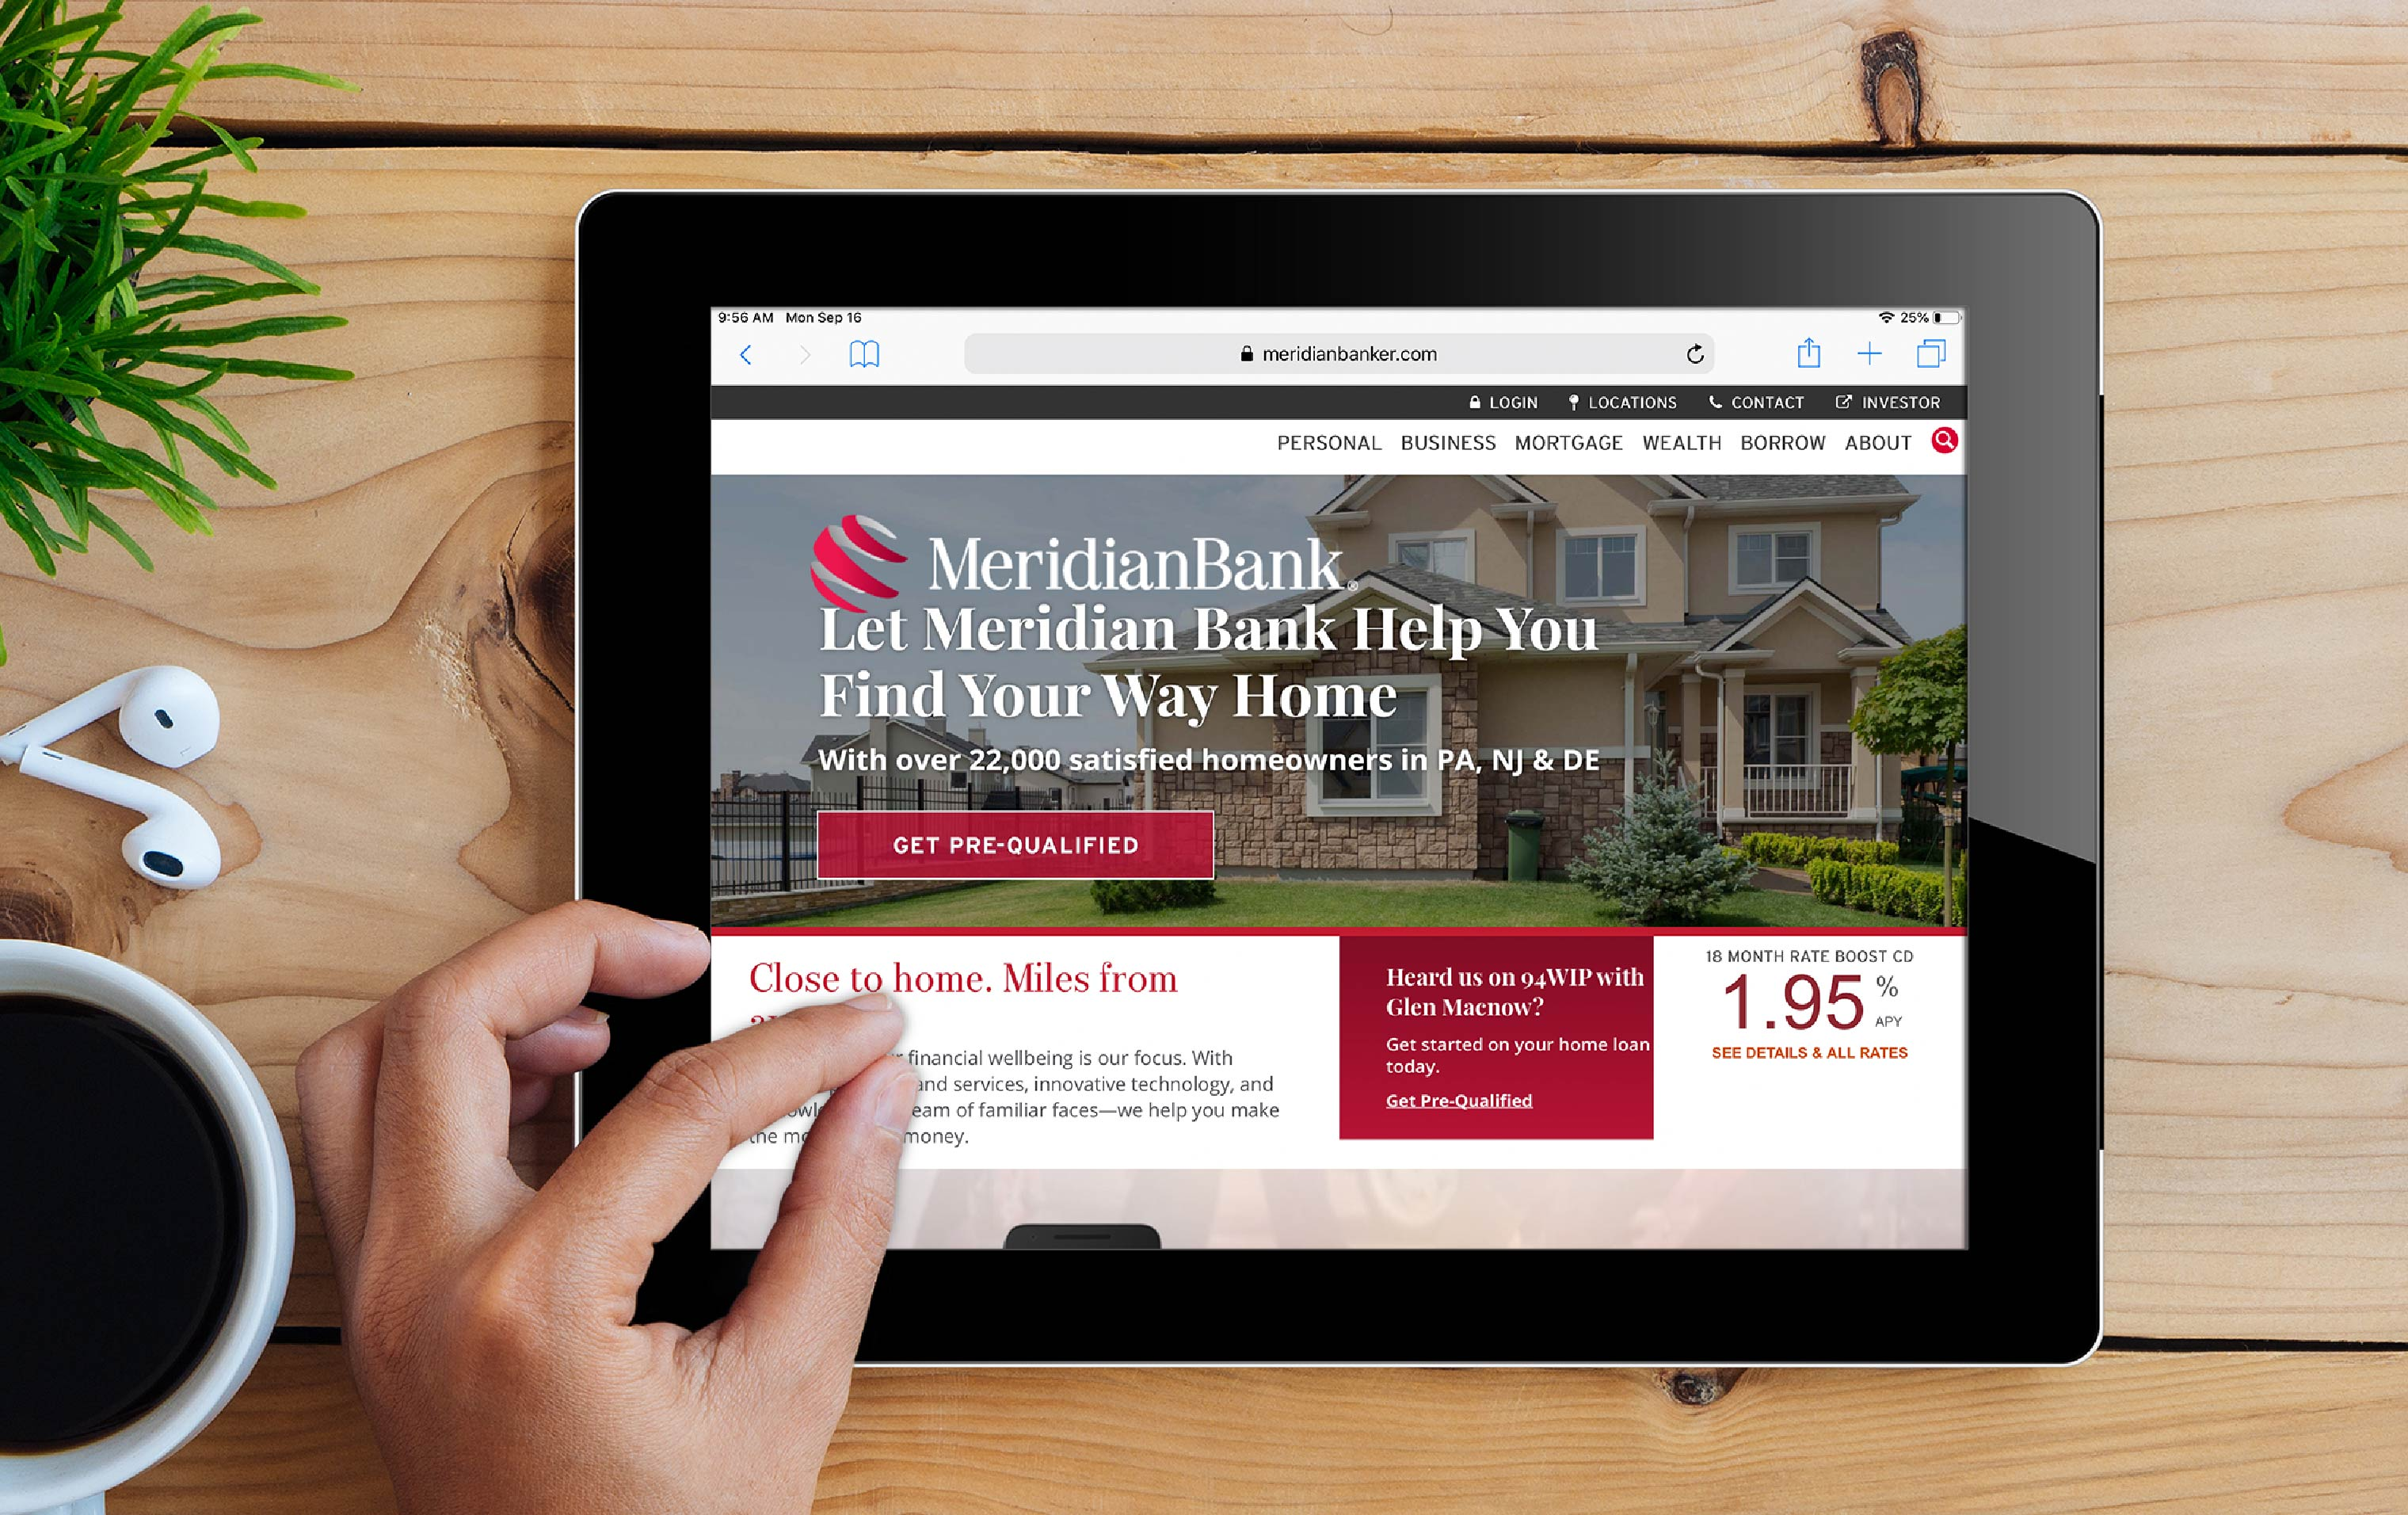 MS-Agency-Blog-SEP-Top-5-Things-To-Consider-When-ReDesigning-Your-WordPress-Website-IMAGES-Stat-Image-6-ipad-meridian-bank